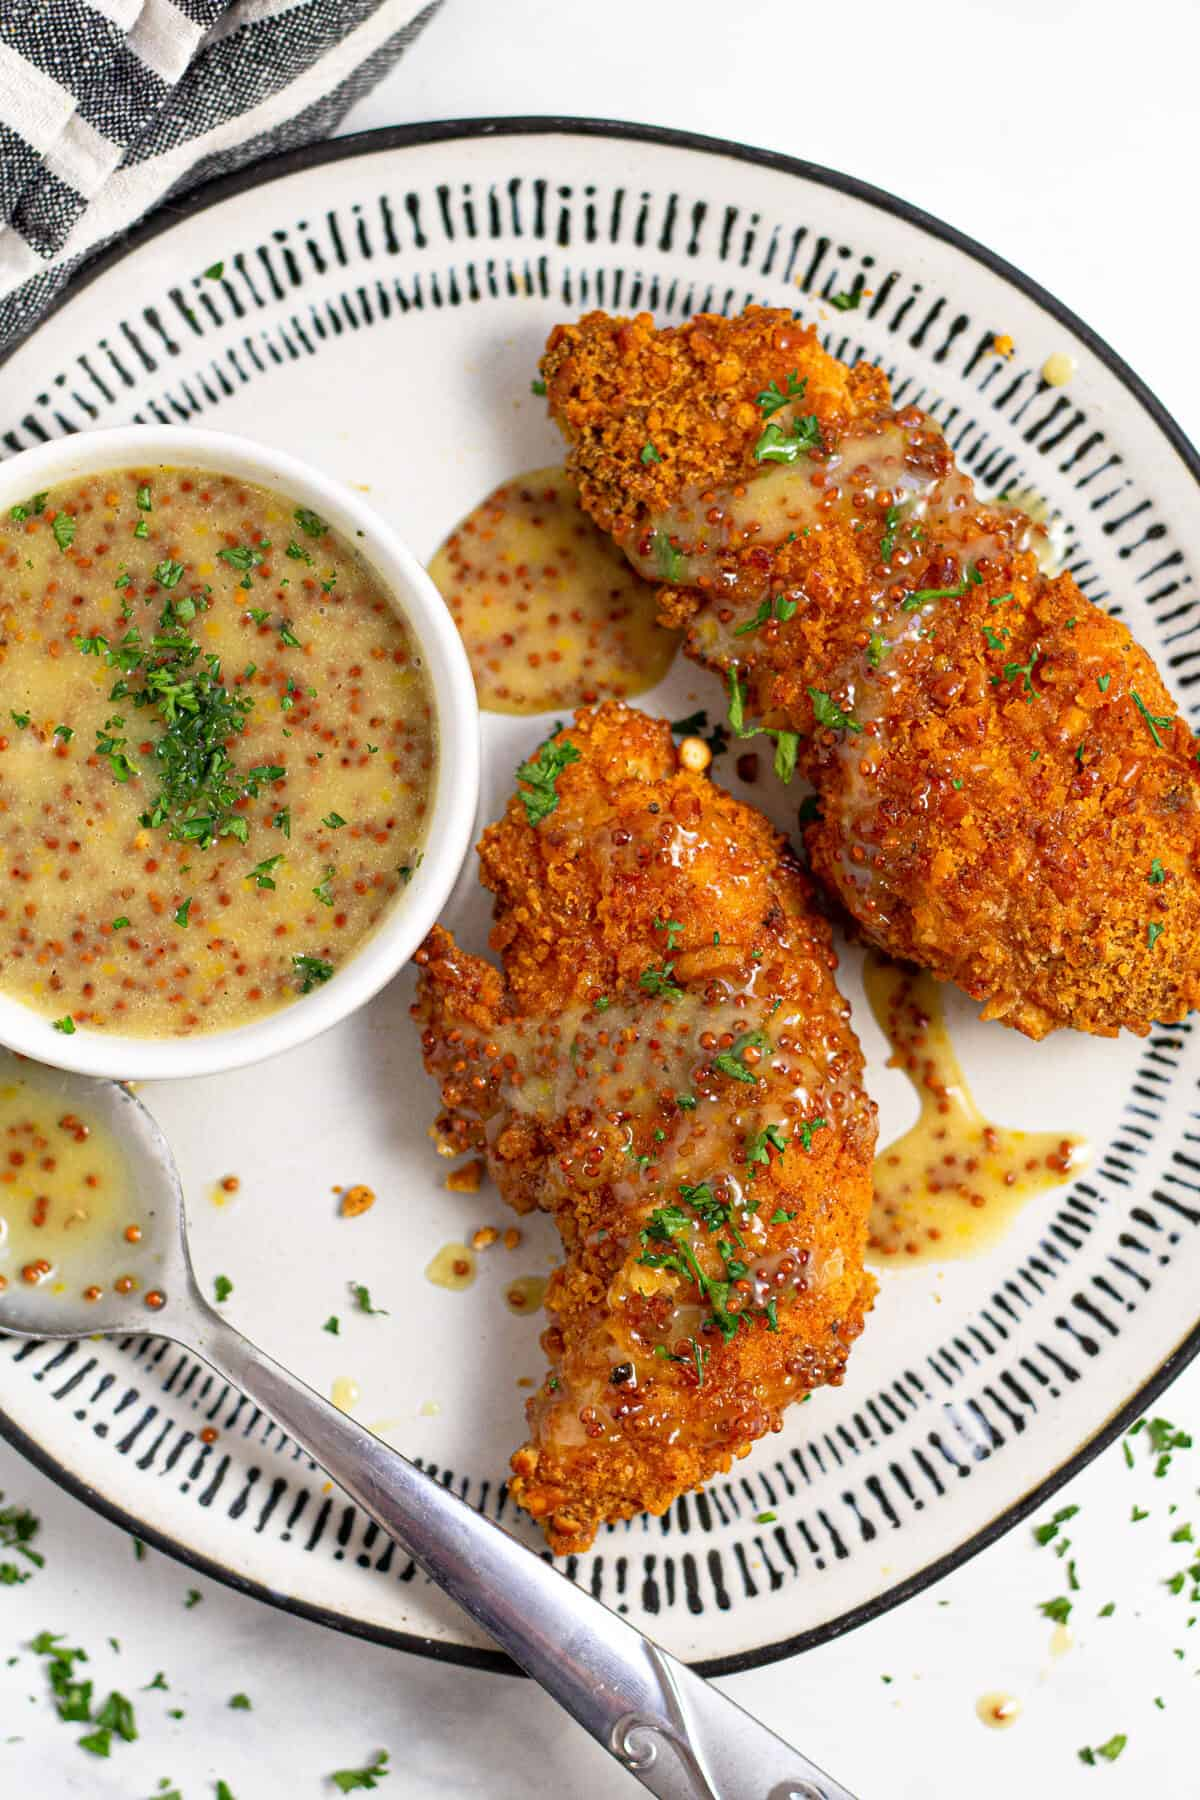 Overhead shot of baked chicken tenders on a white plate garnished with fresh parsley